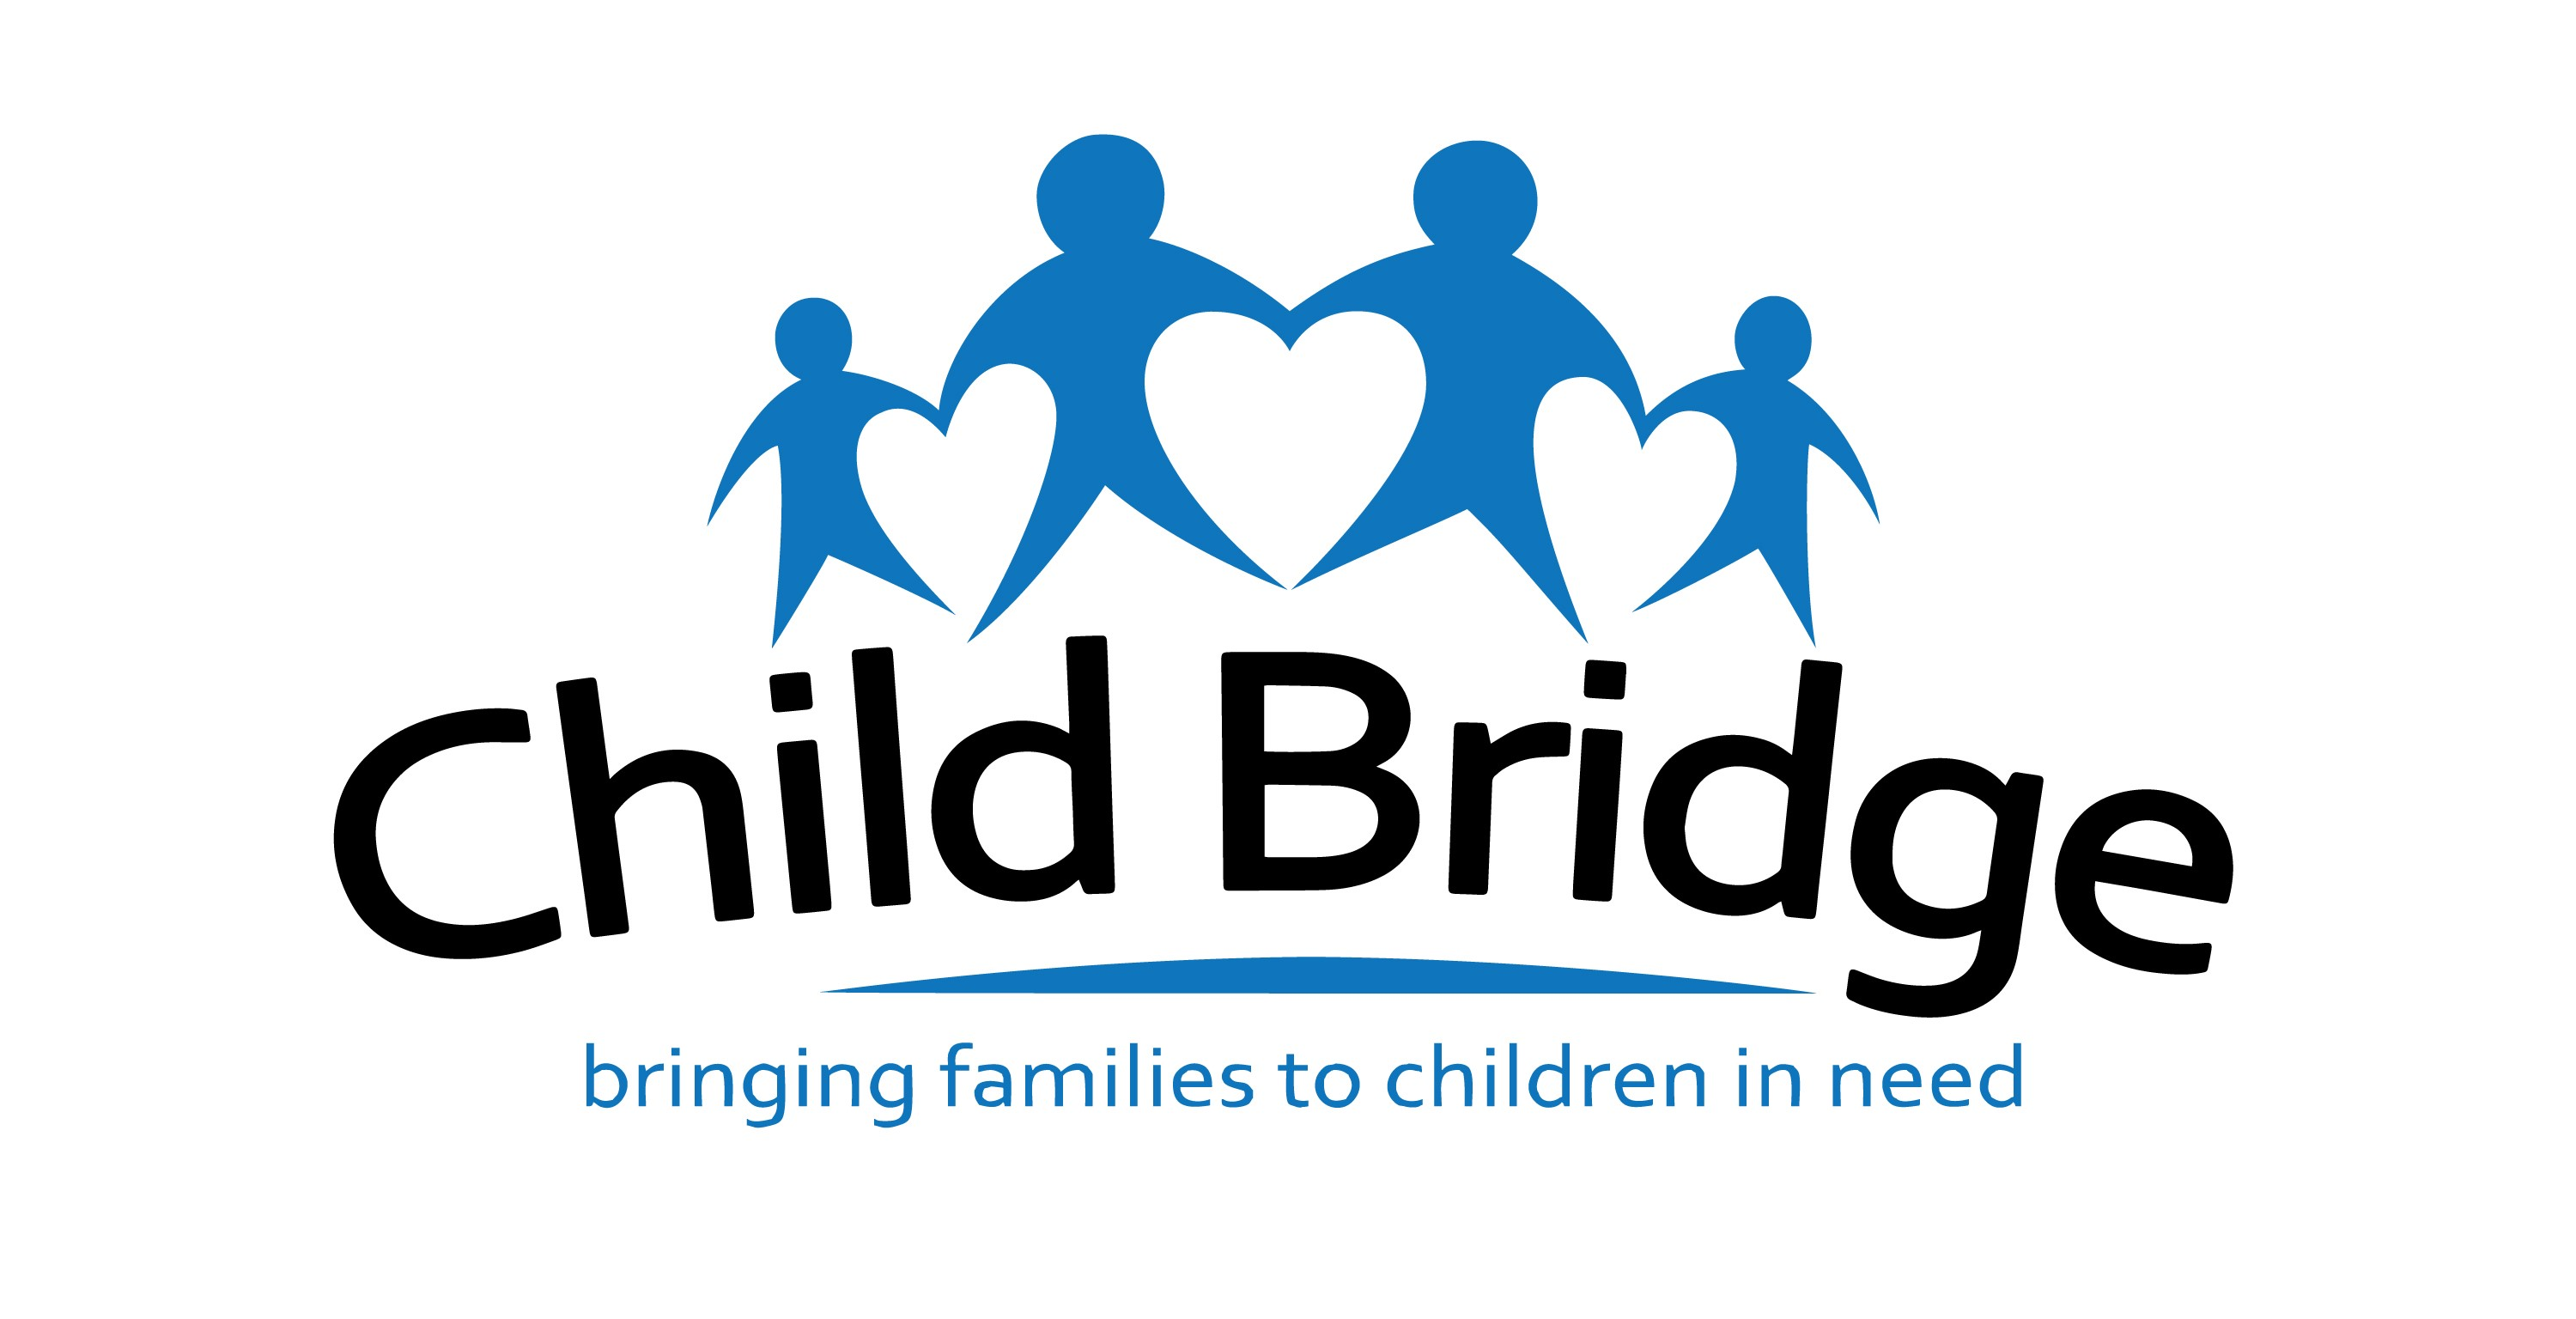 Child Bridge, Inc.